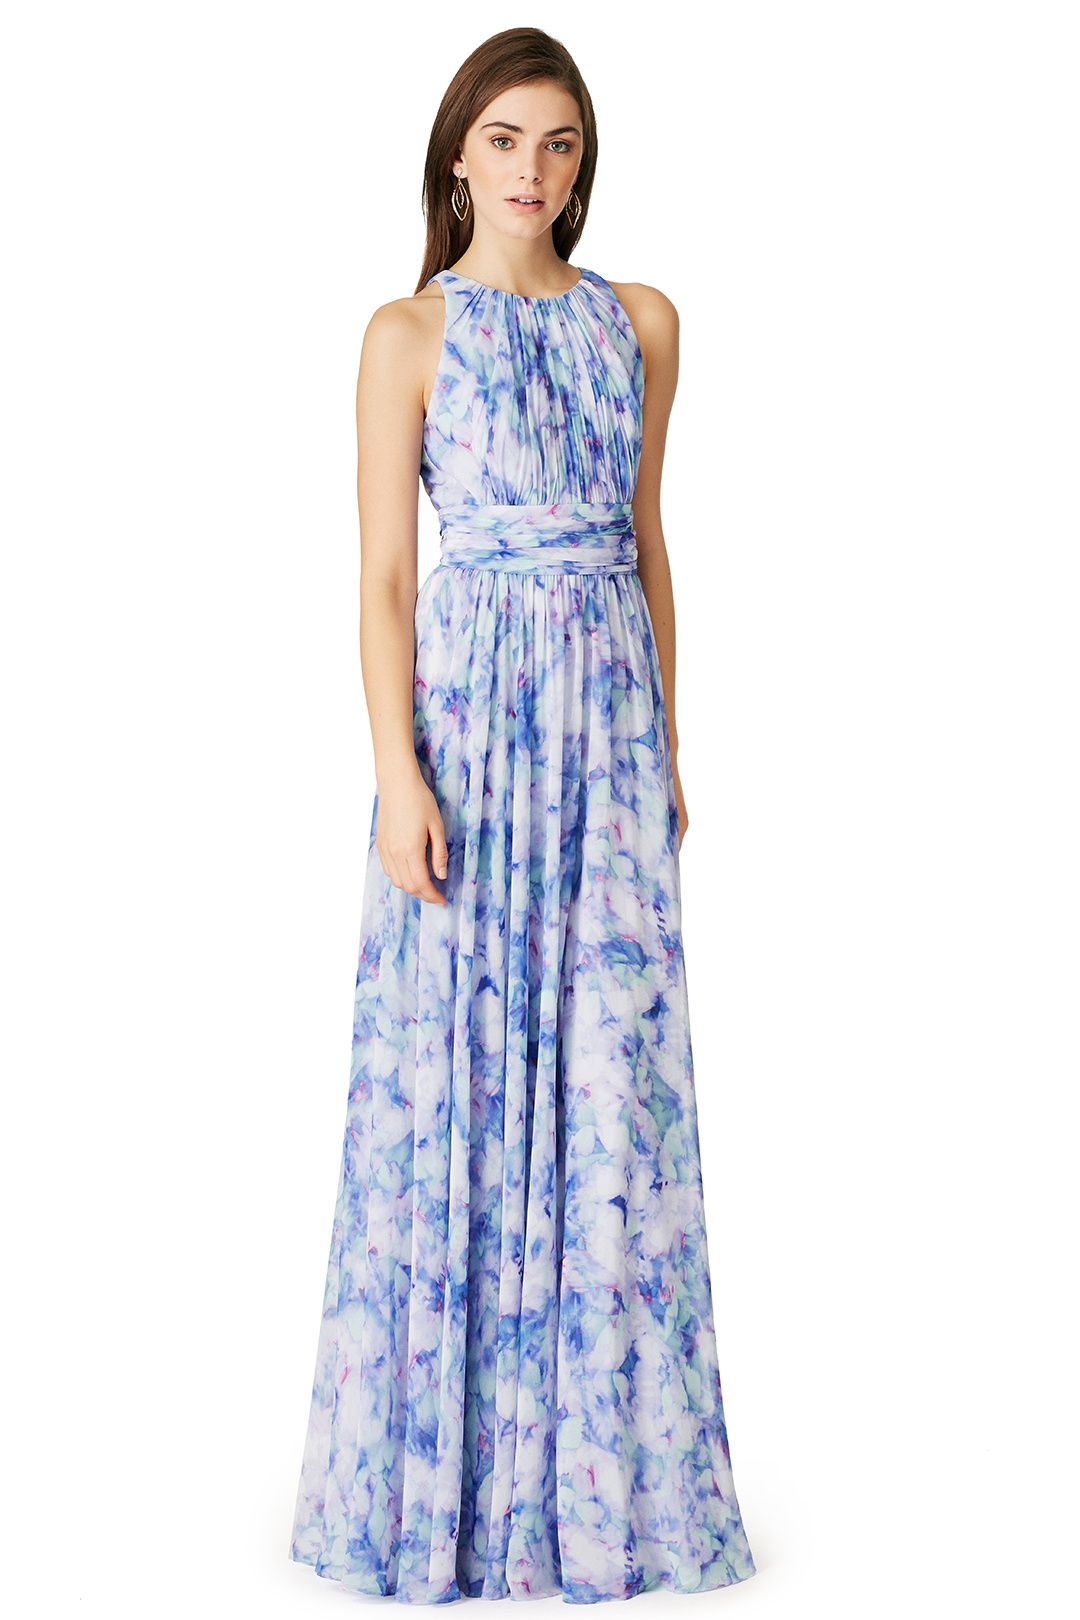 Cheap maxi dresses for weddings  Water Lilies Maxi Dress  Water lilies Badgley mischka and Maxi dresses